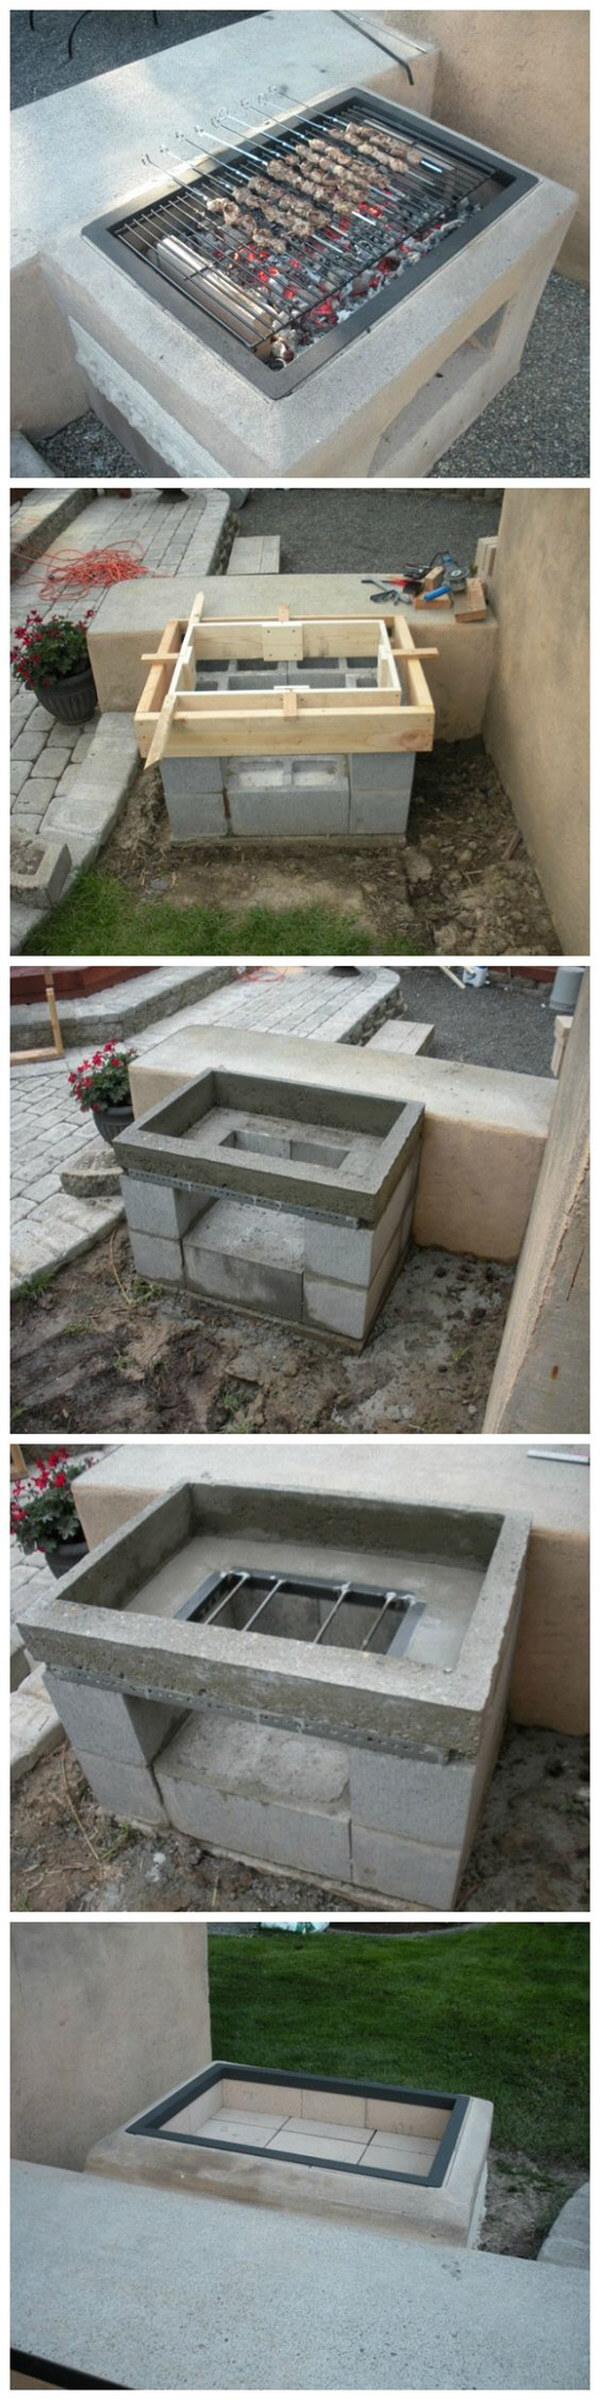 28 Best Ways To Use Cinder Blocks Ideas And Designs For 2021